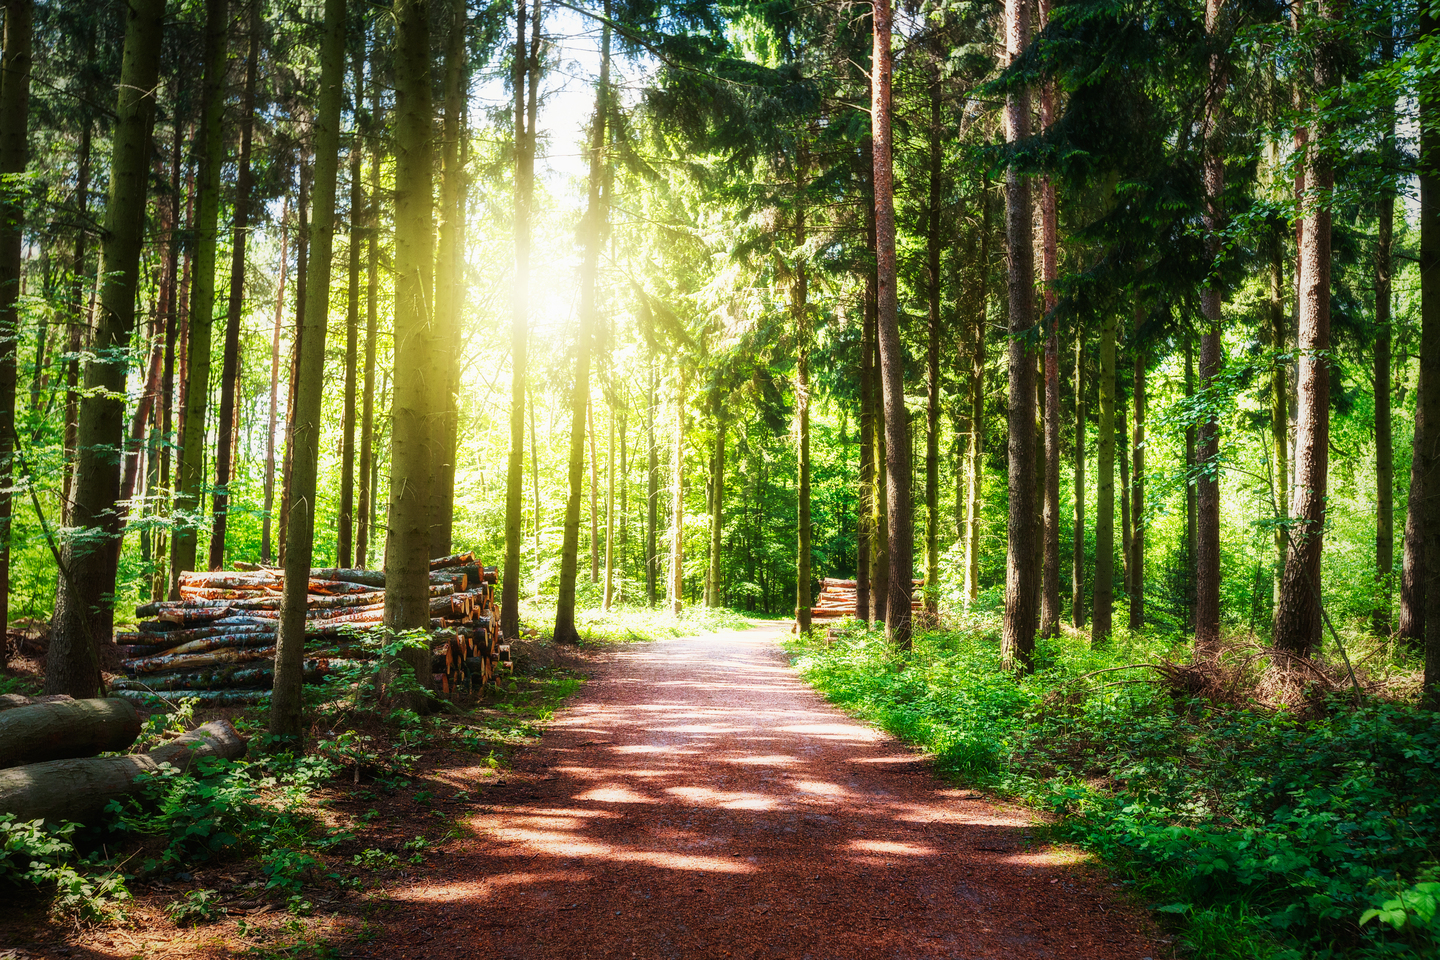 Path through a green forest with sunlight